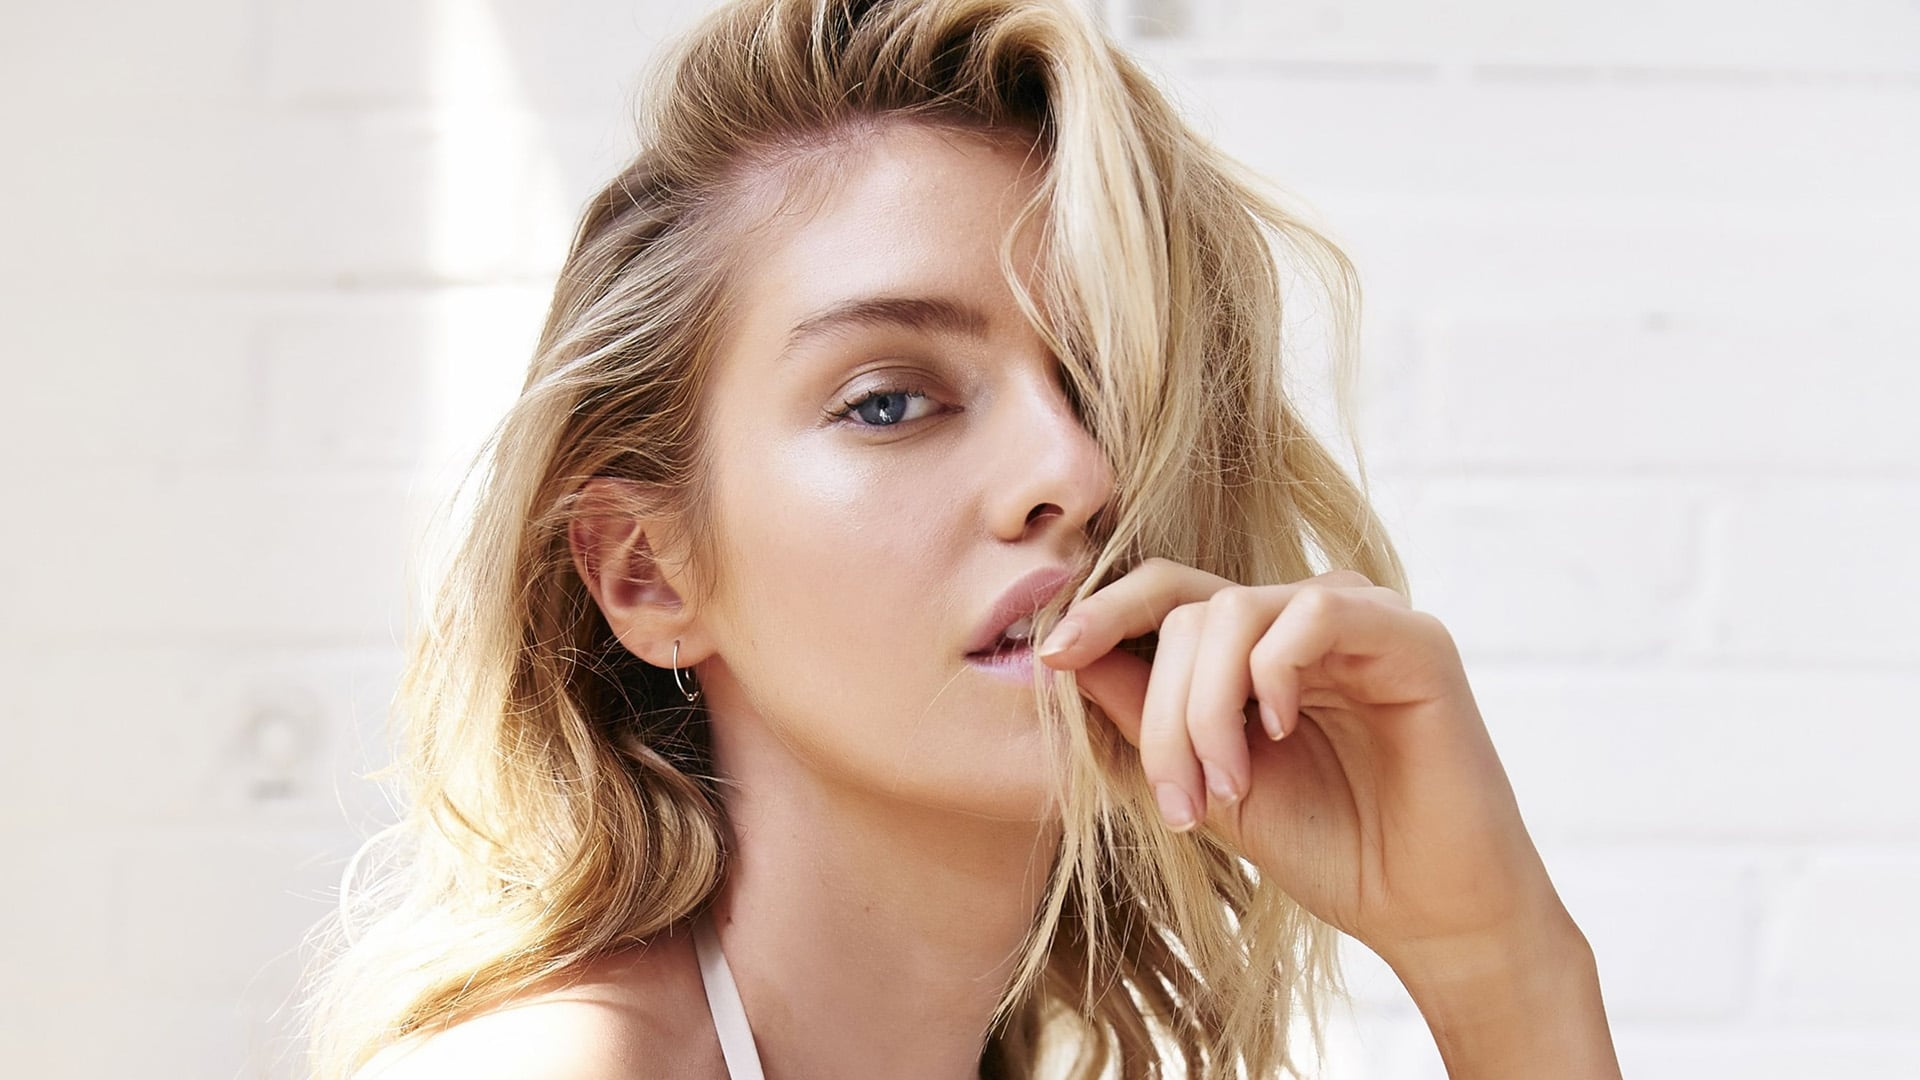 Stella Maxwell widescreen wallpaper